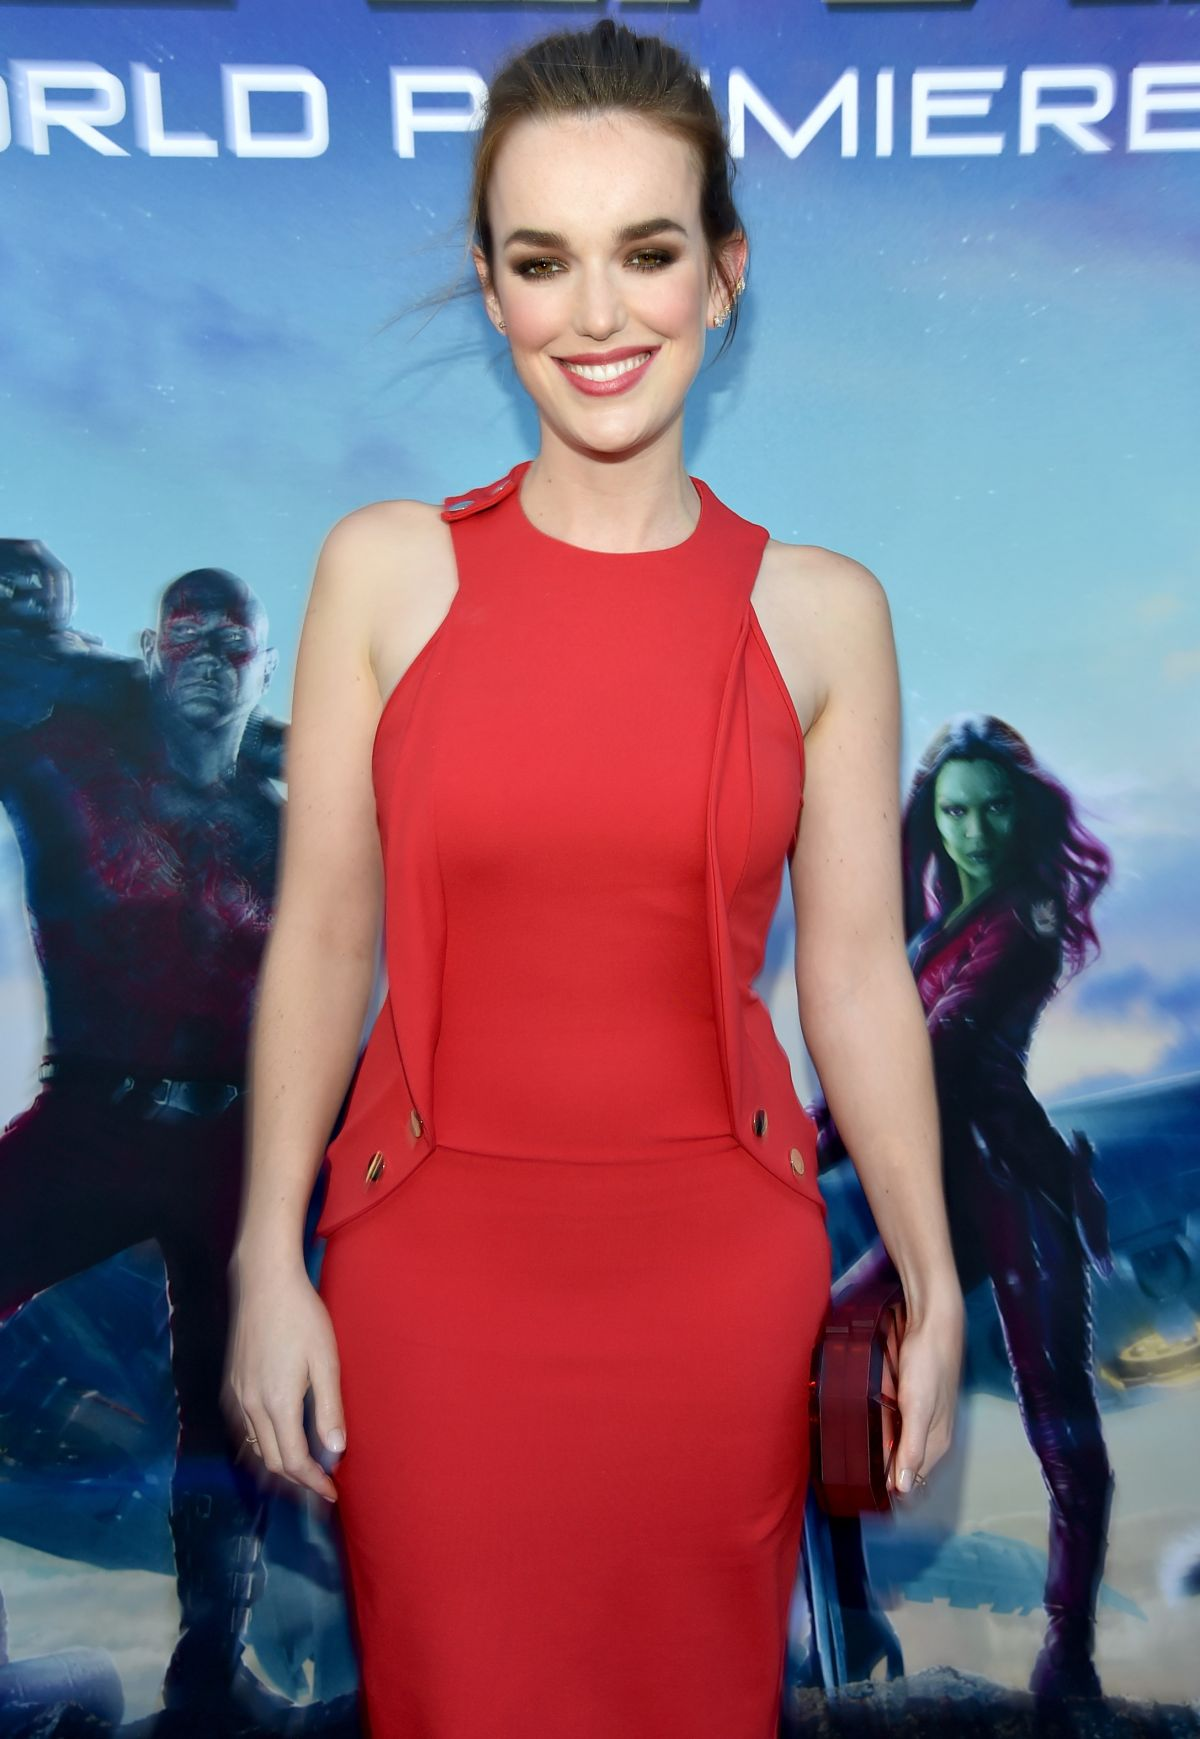 ELIZABETH HENSTRIDGE at Guardians of the Galaxy premiere www.scifiempire.net